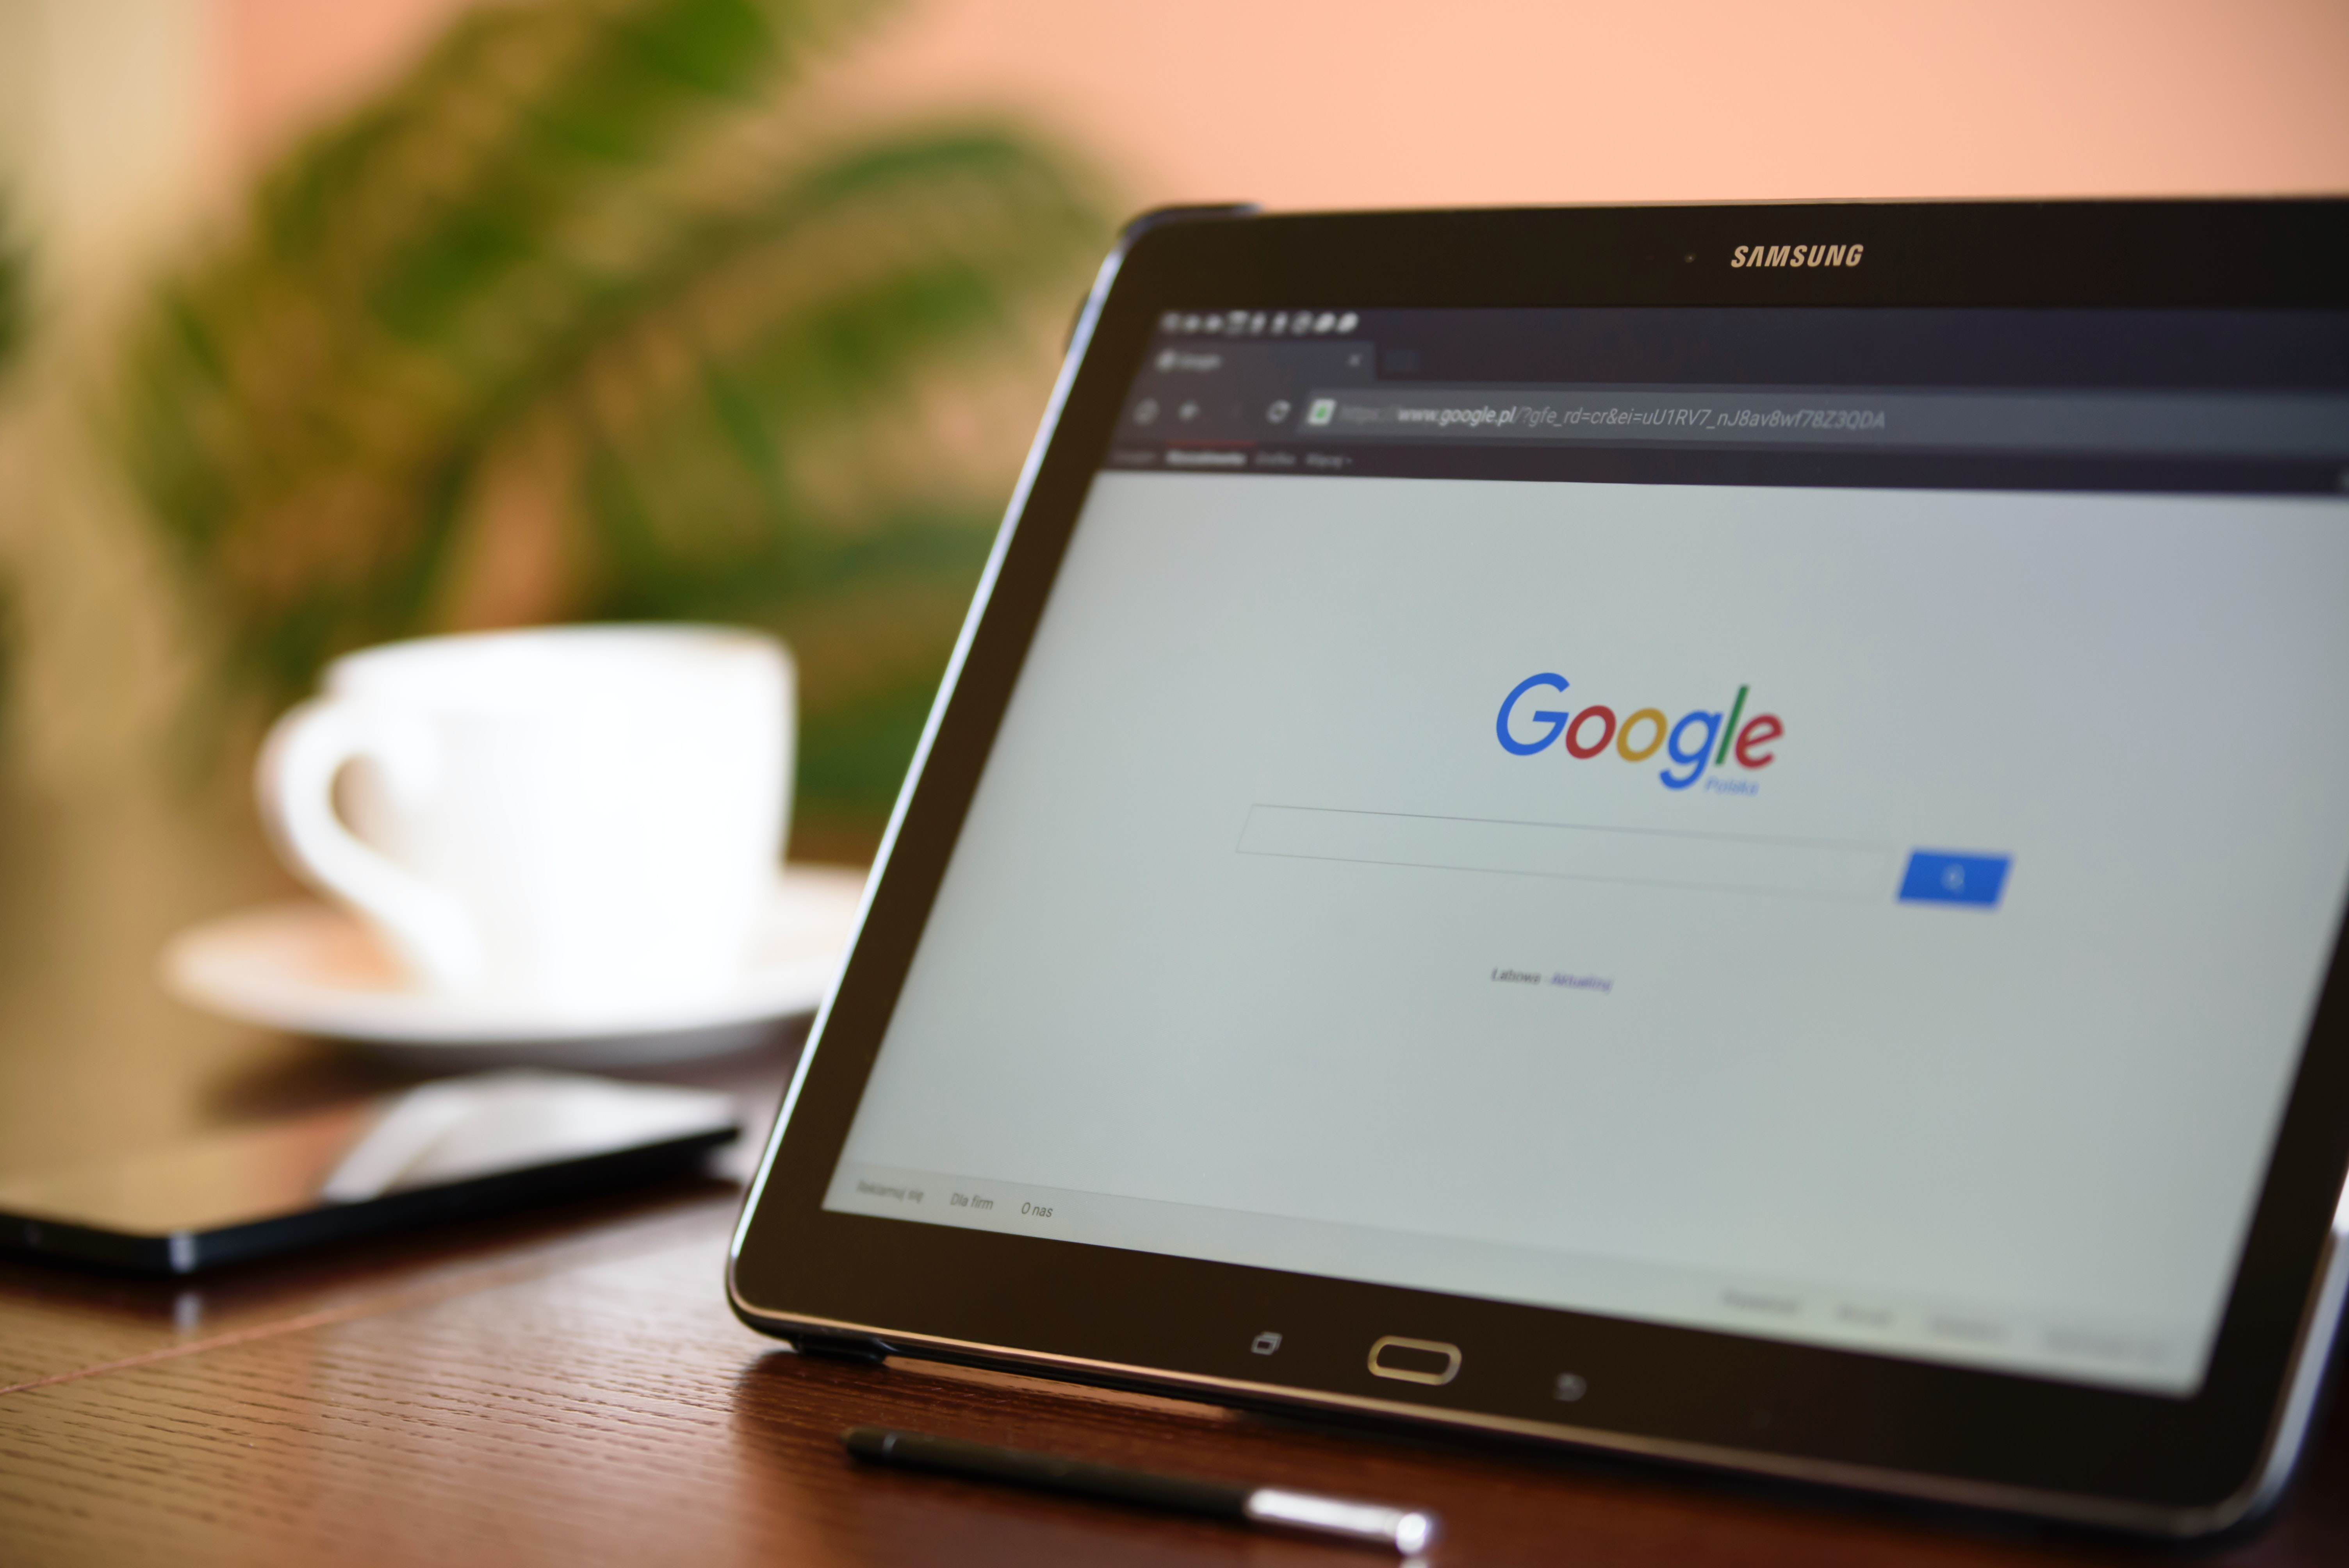 The Ultimate Guide to Google Shopping in 2021